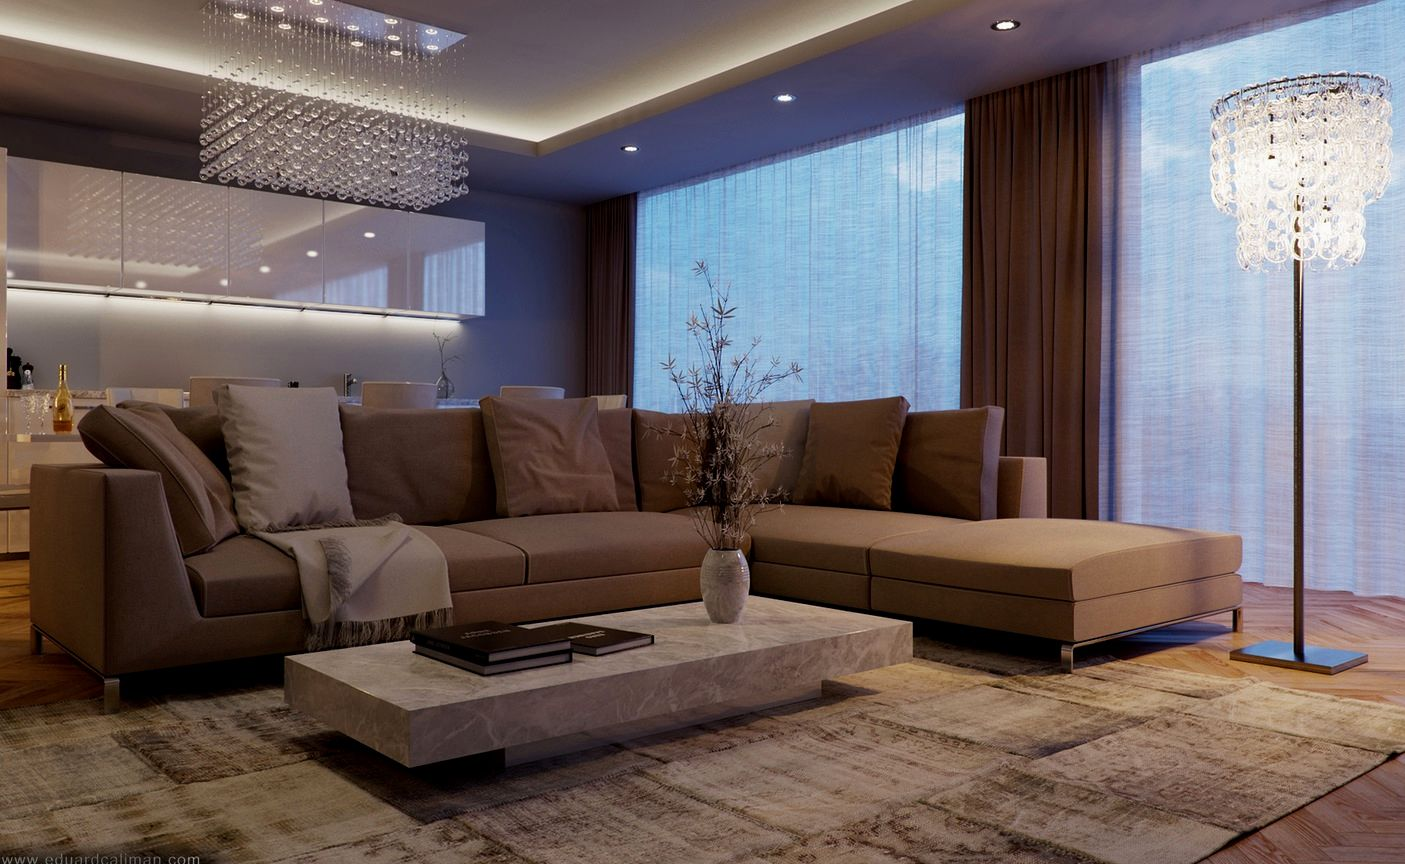 new cream colored sofa décor-Cool Cream Colored sofa Image